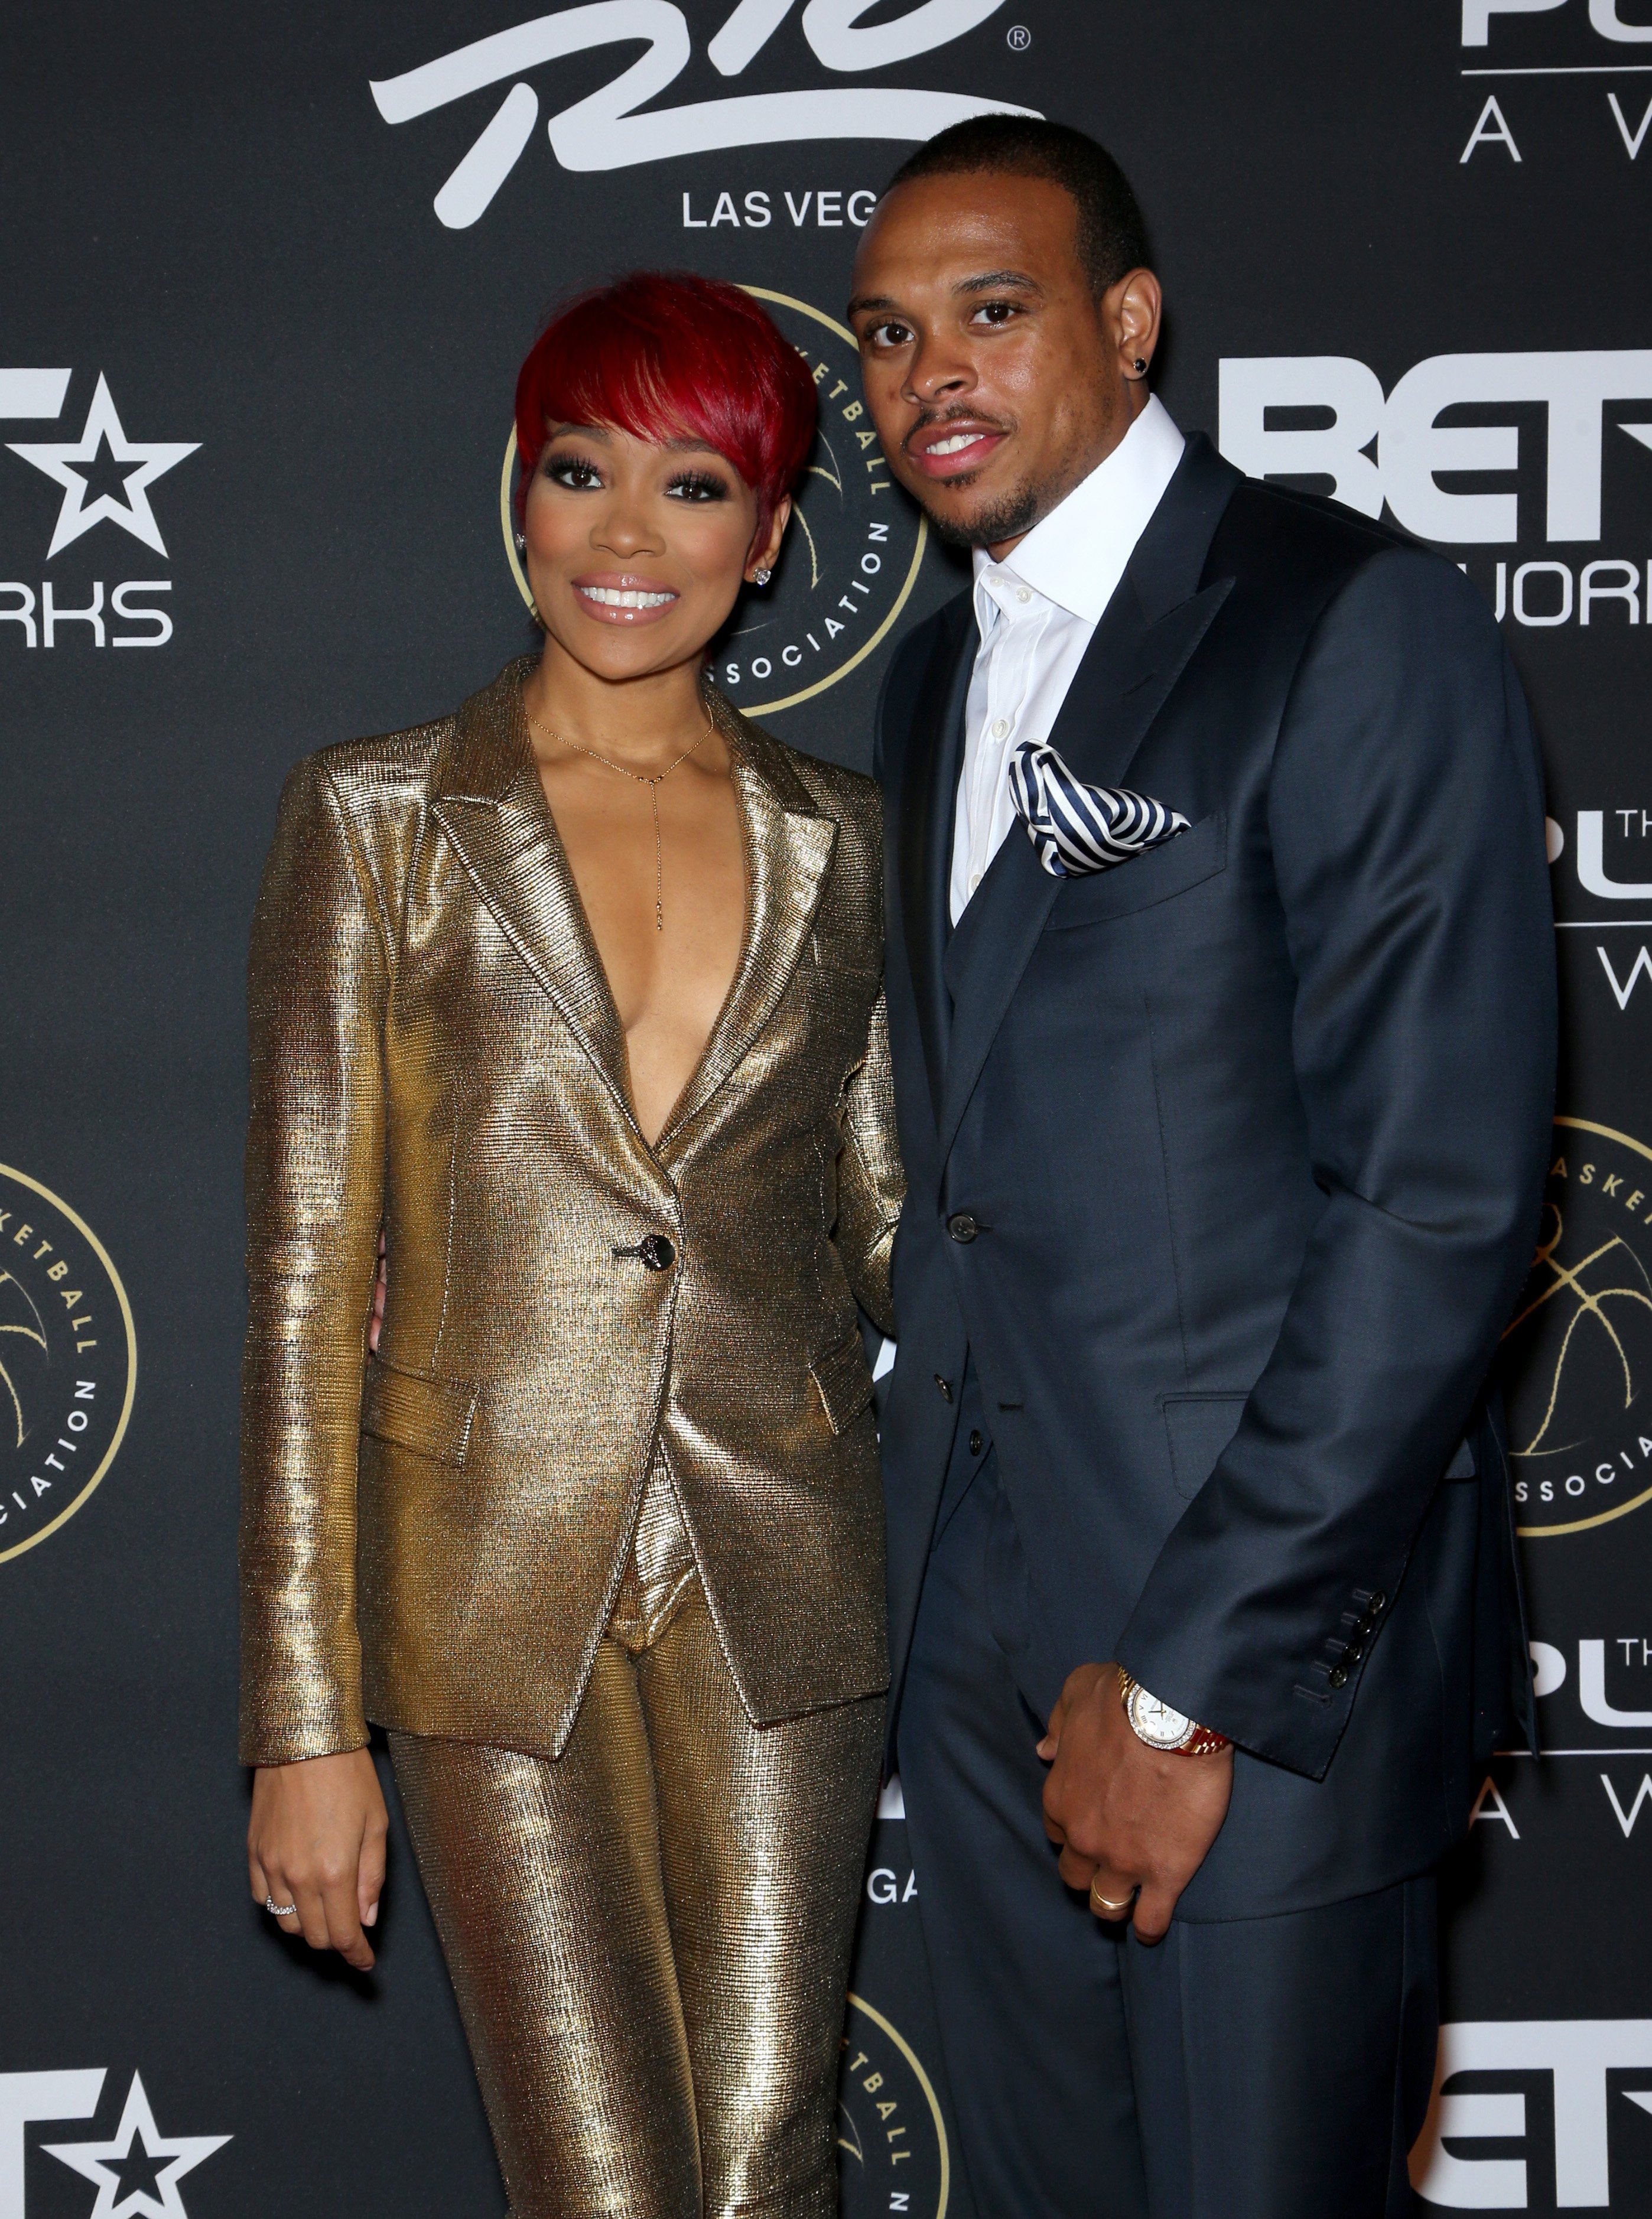 Monica and Shannon Brown at The Players' Awards in Las Vegas, Nevada on July 19, 2015 | Photo: Getty Images.